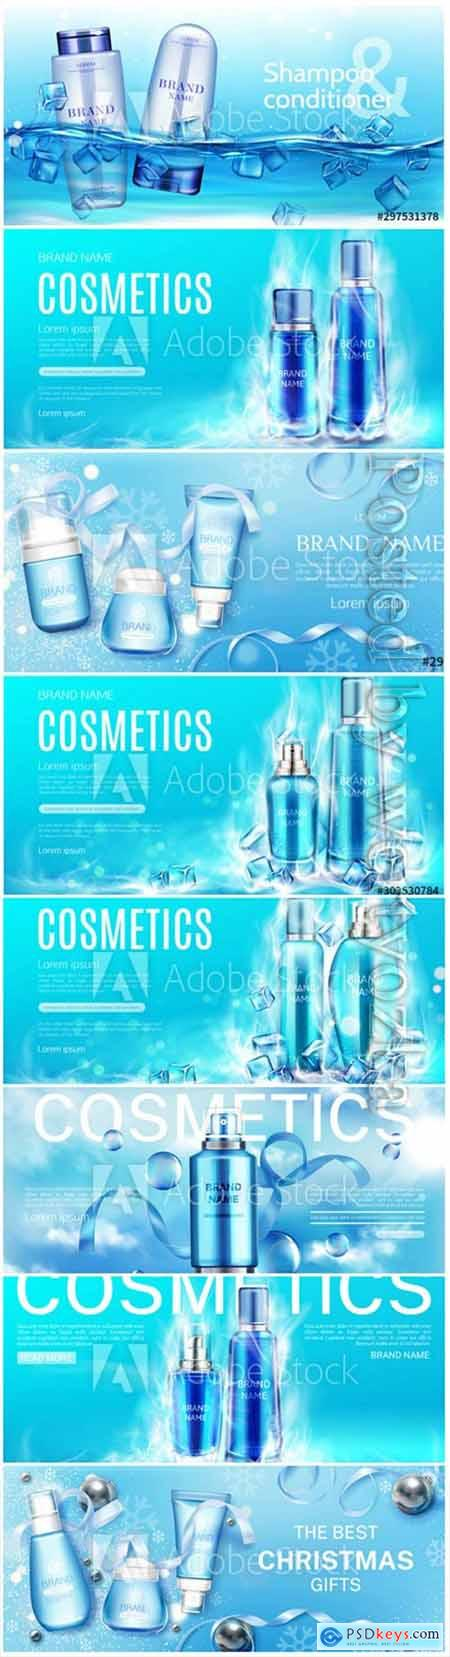 Beauty product cosmetic advertising promo poster realistic 3d vector143